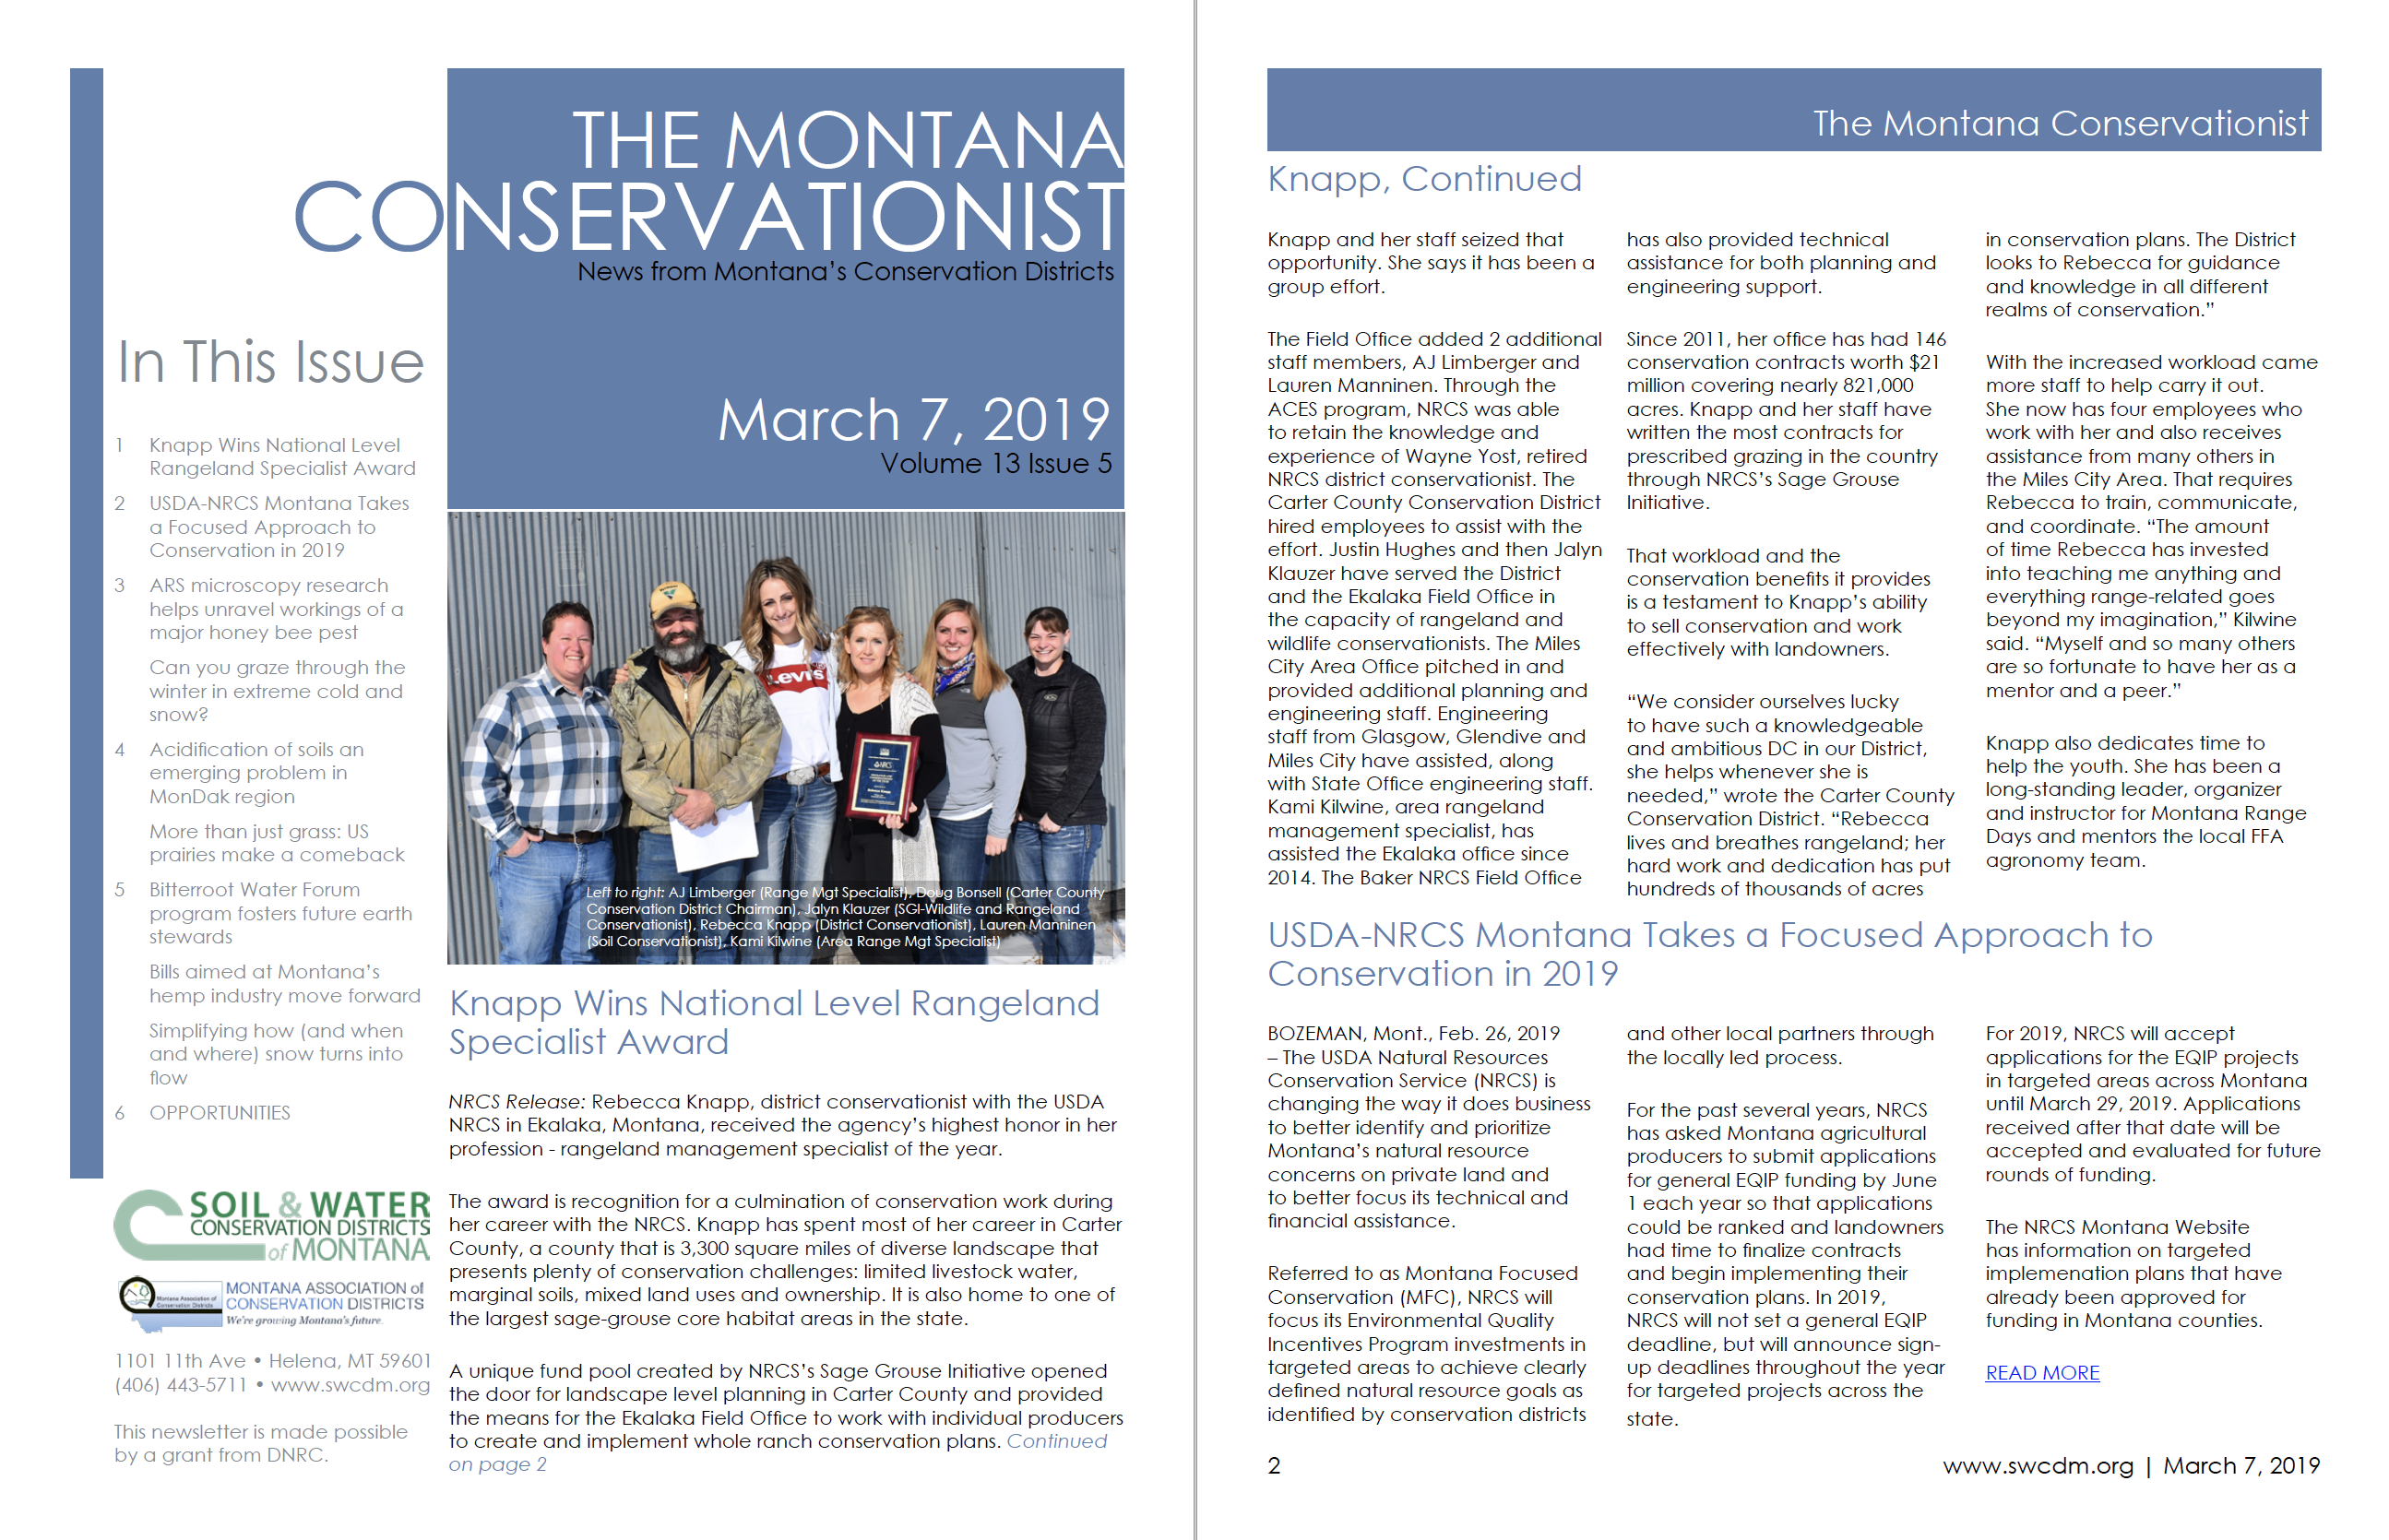 The Montana Conservationist March 7